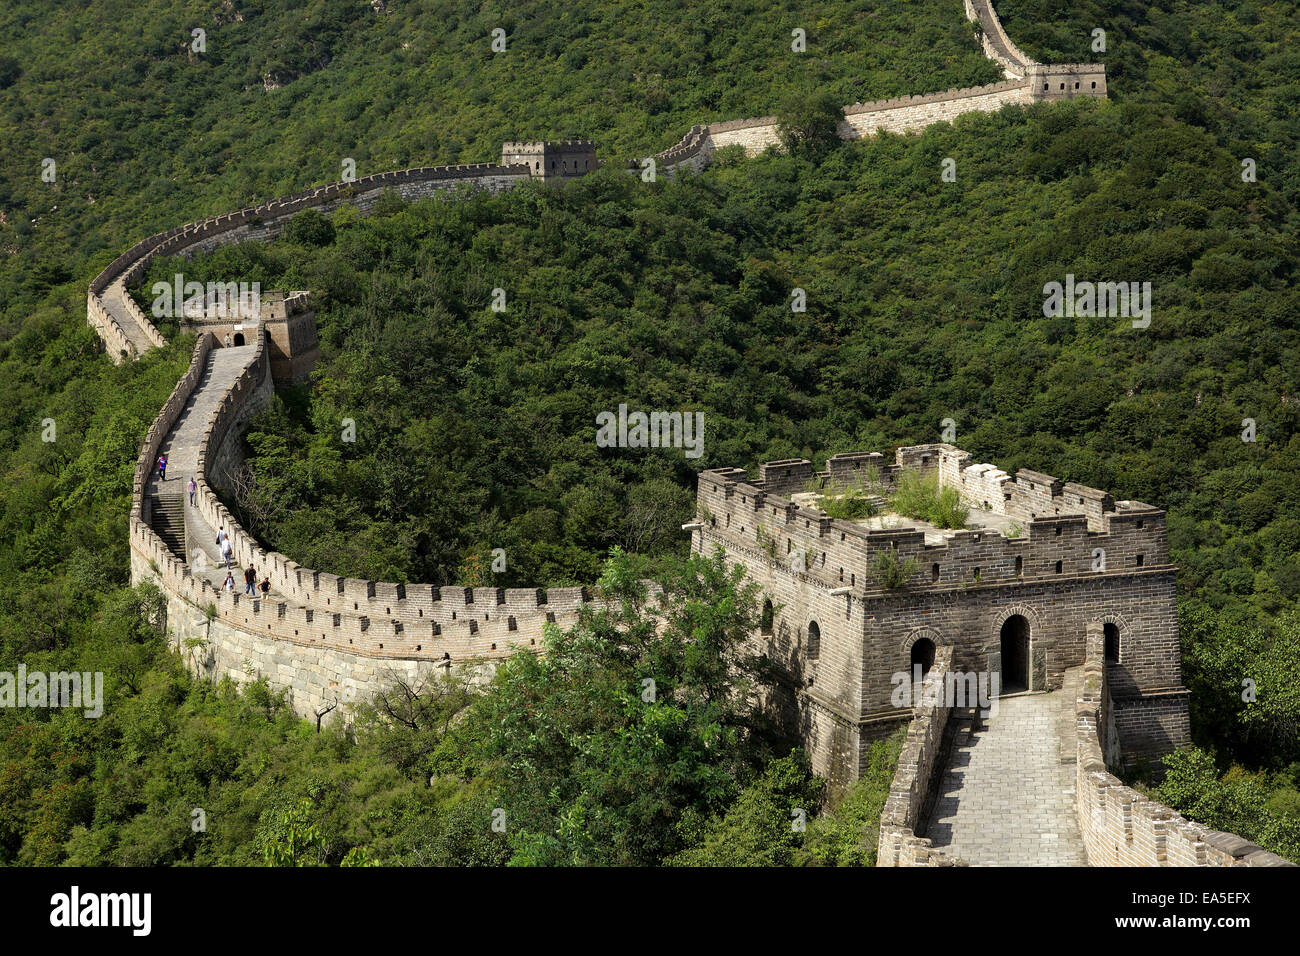 La Chine, Grande Muraille Photo Stock